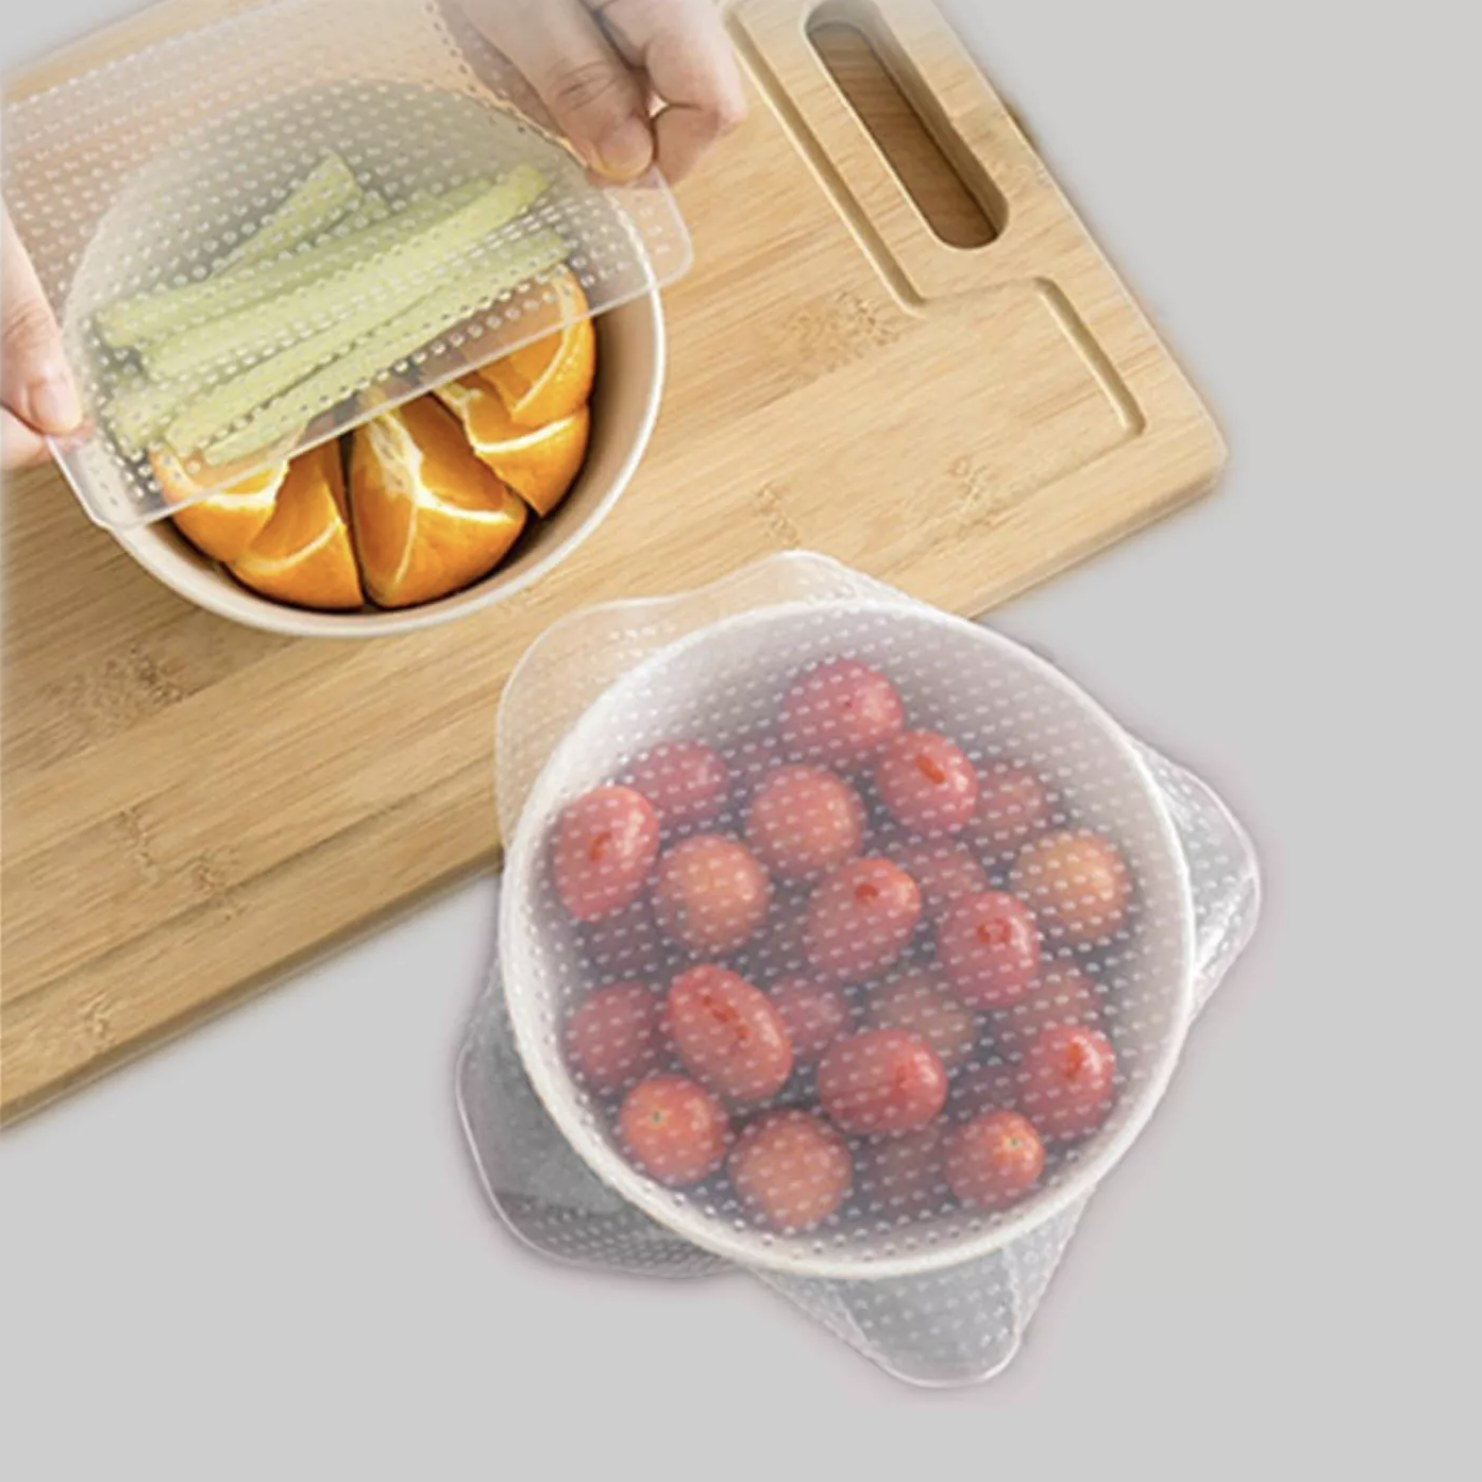 Transparent silicone lids stretched over bowls full of food